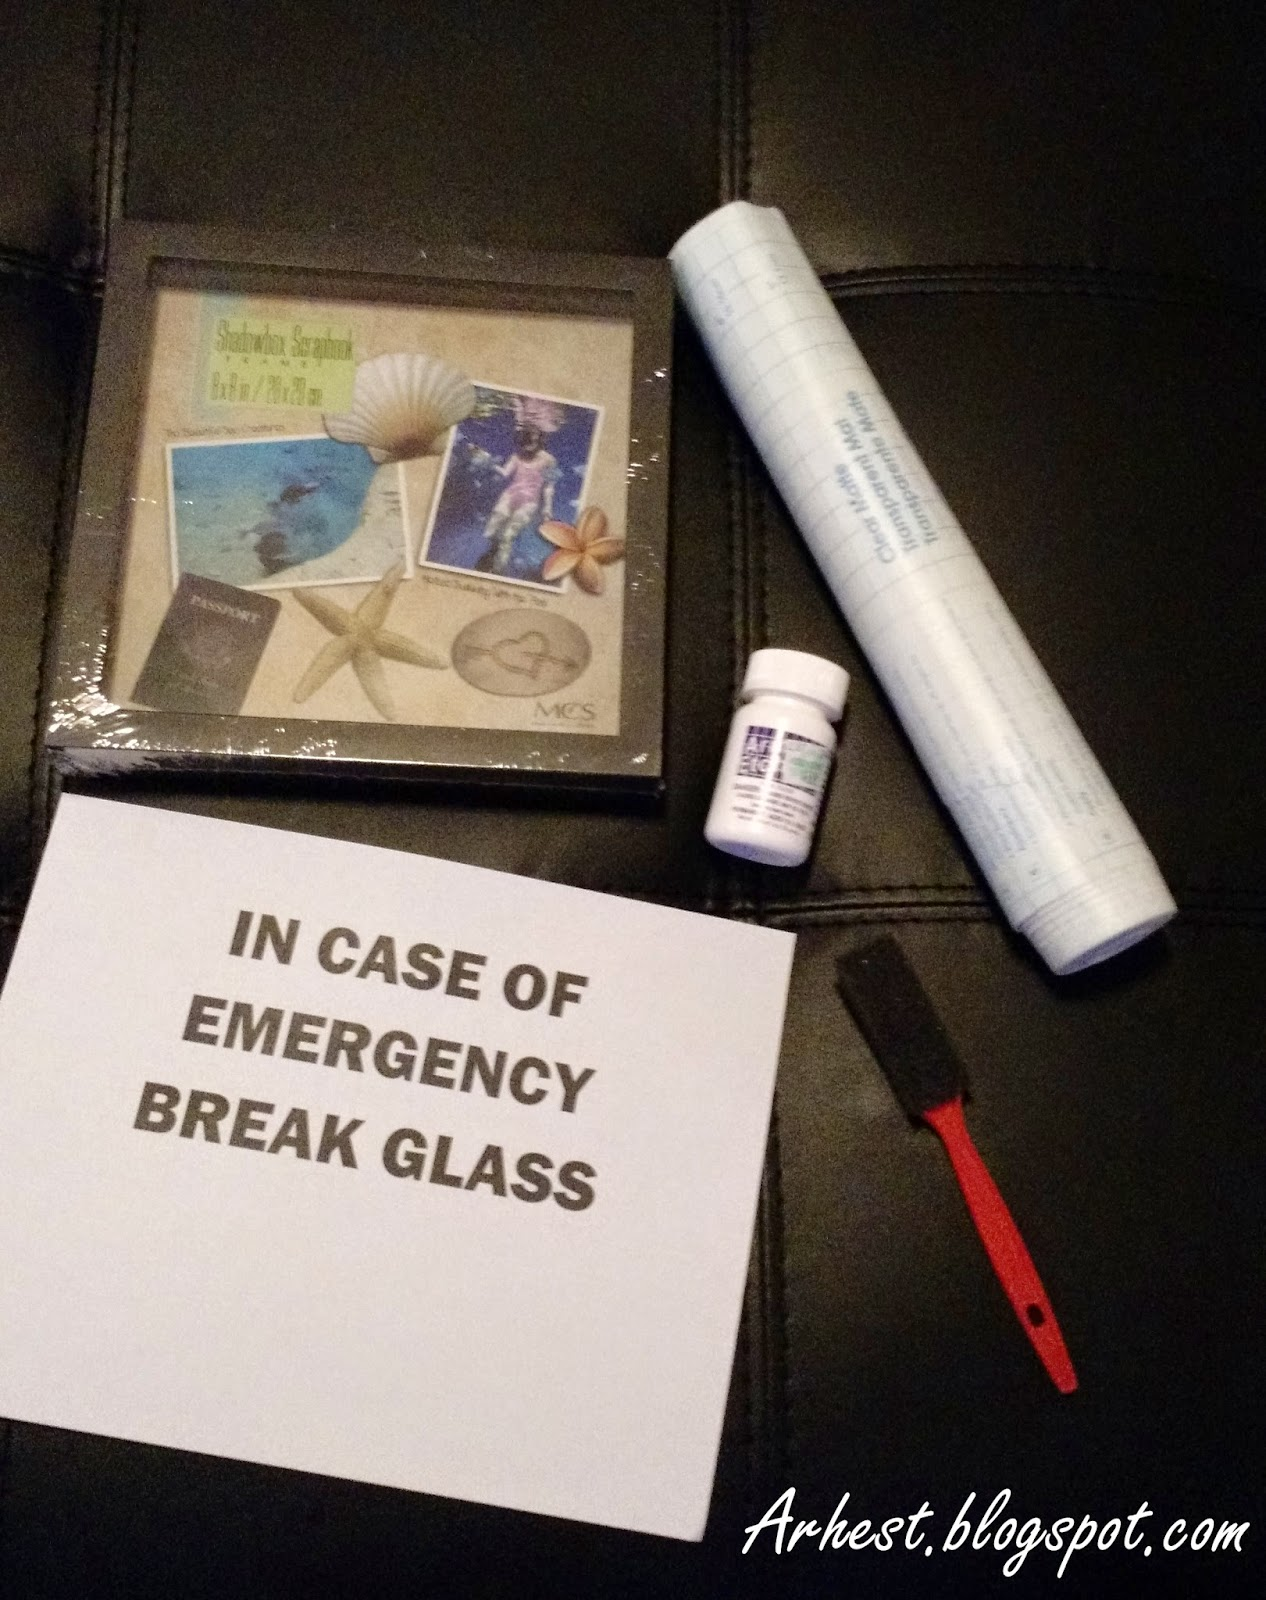 Arhest In Case Of Emergency Break Glass